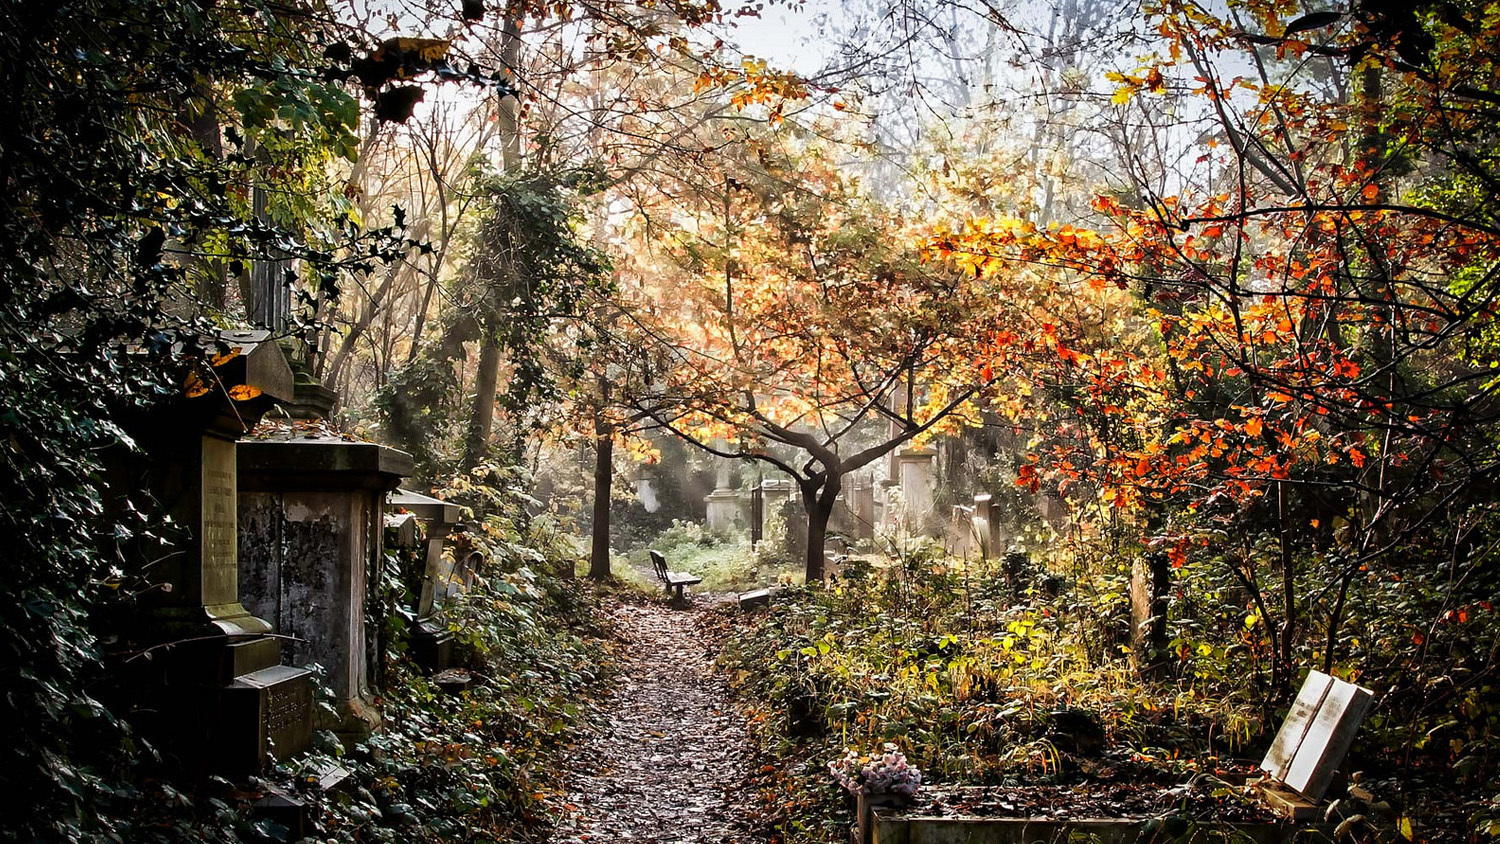 In pictures: the magnificent cemeteries of London